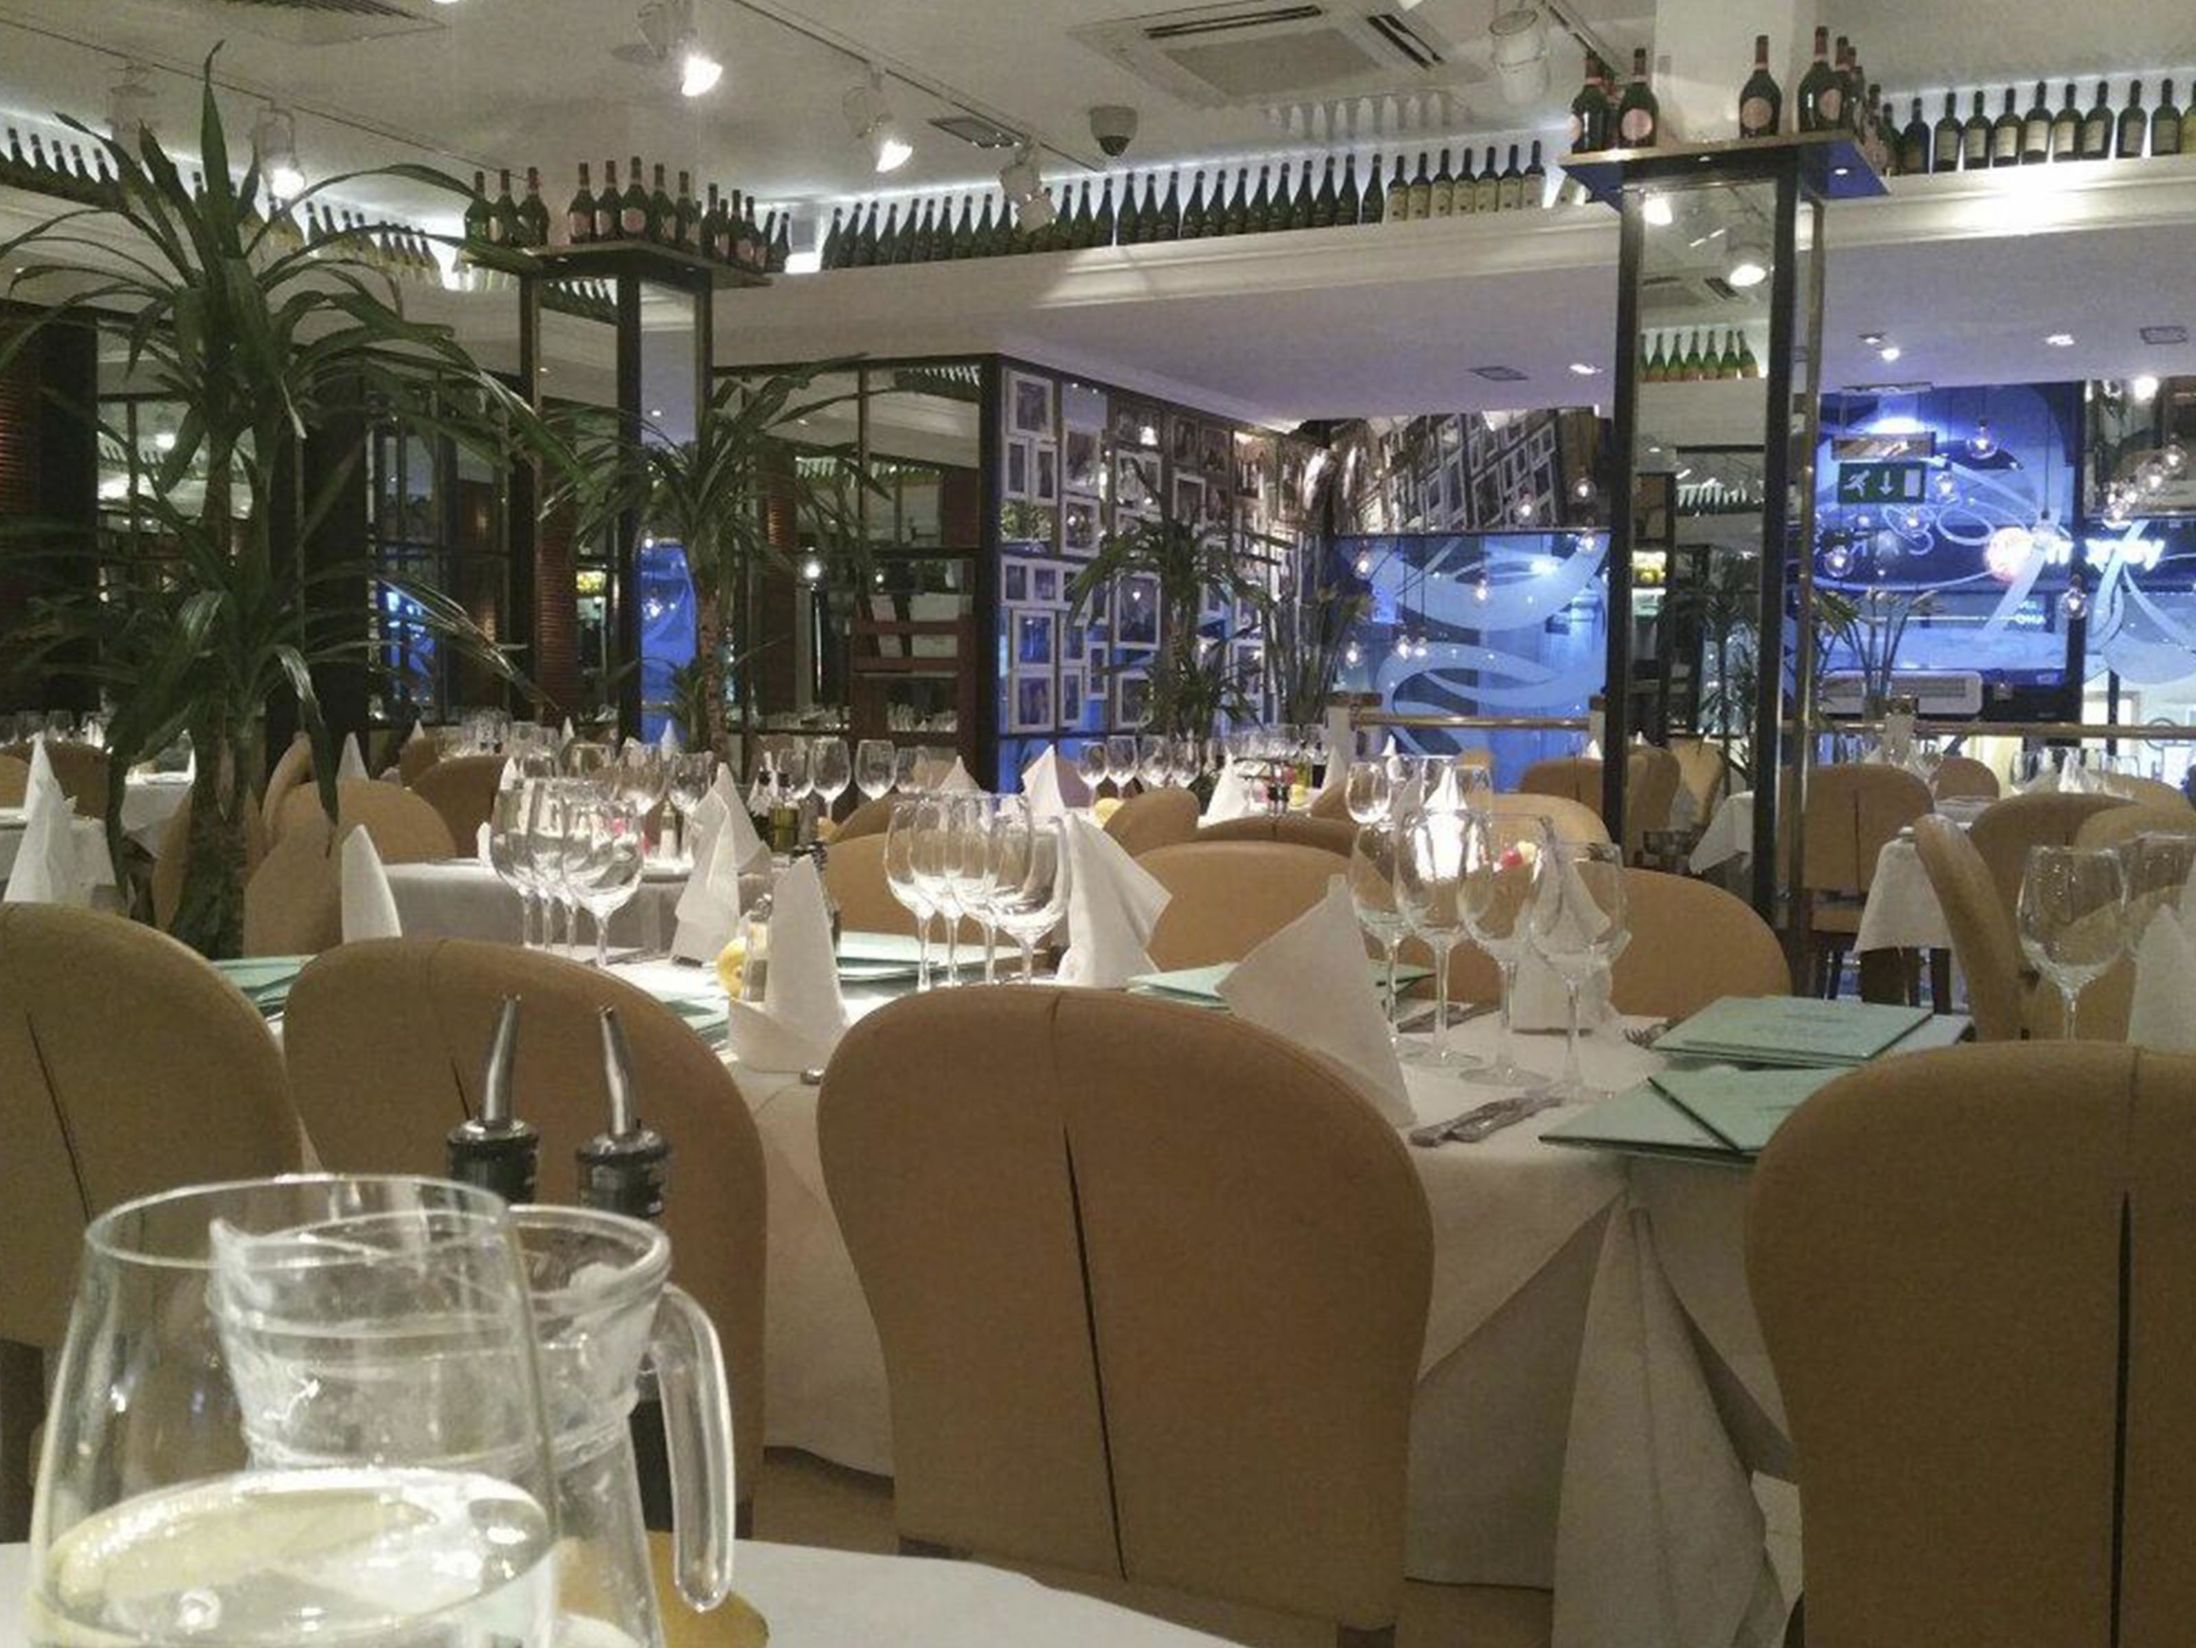 Best Italian Restaurants in Birmingham - San Carlo